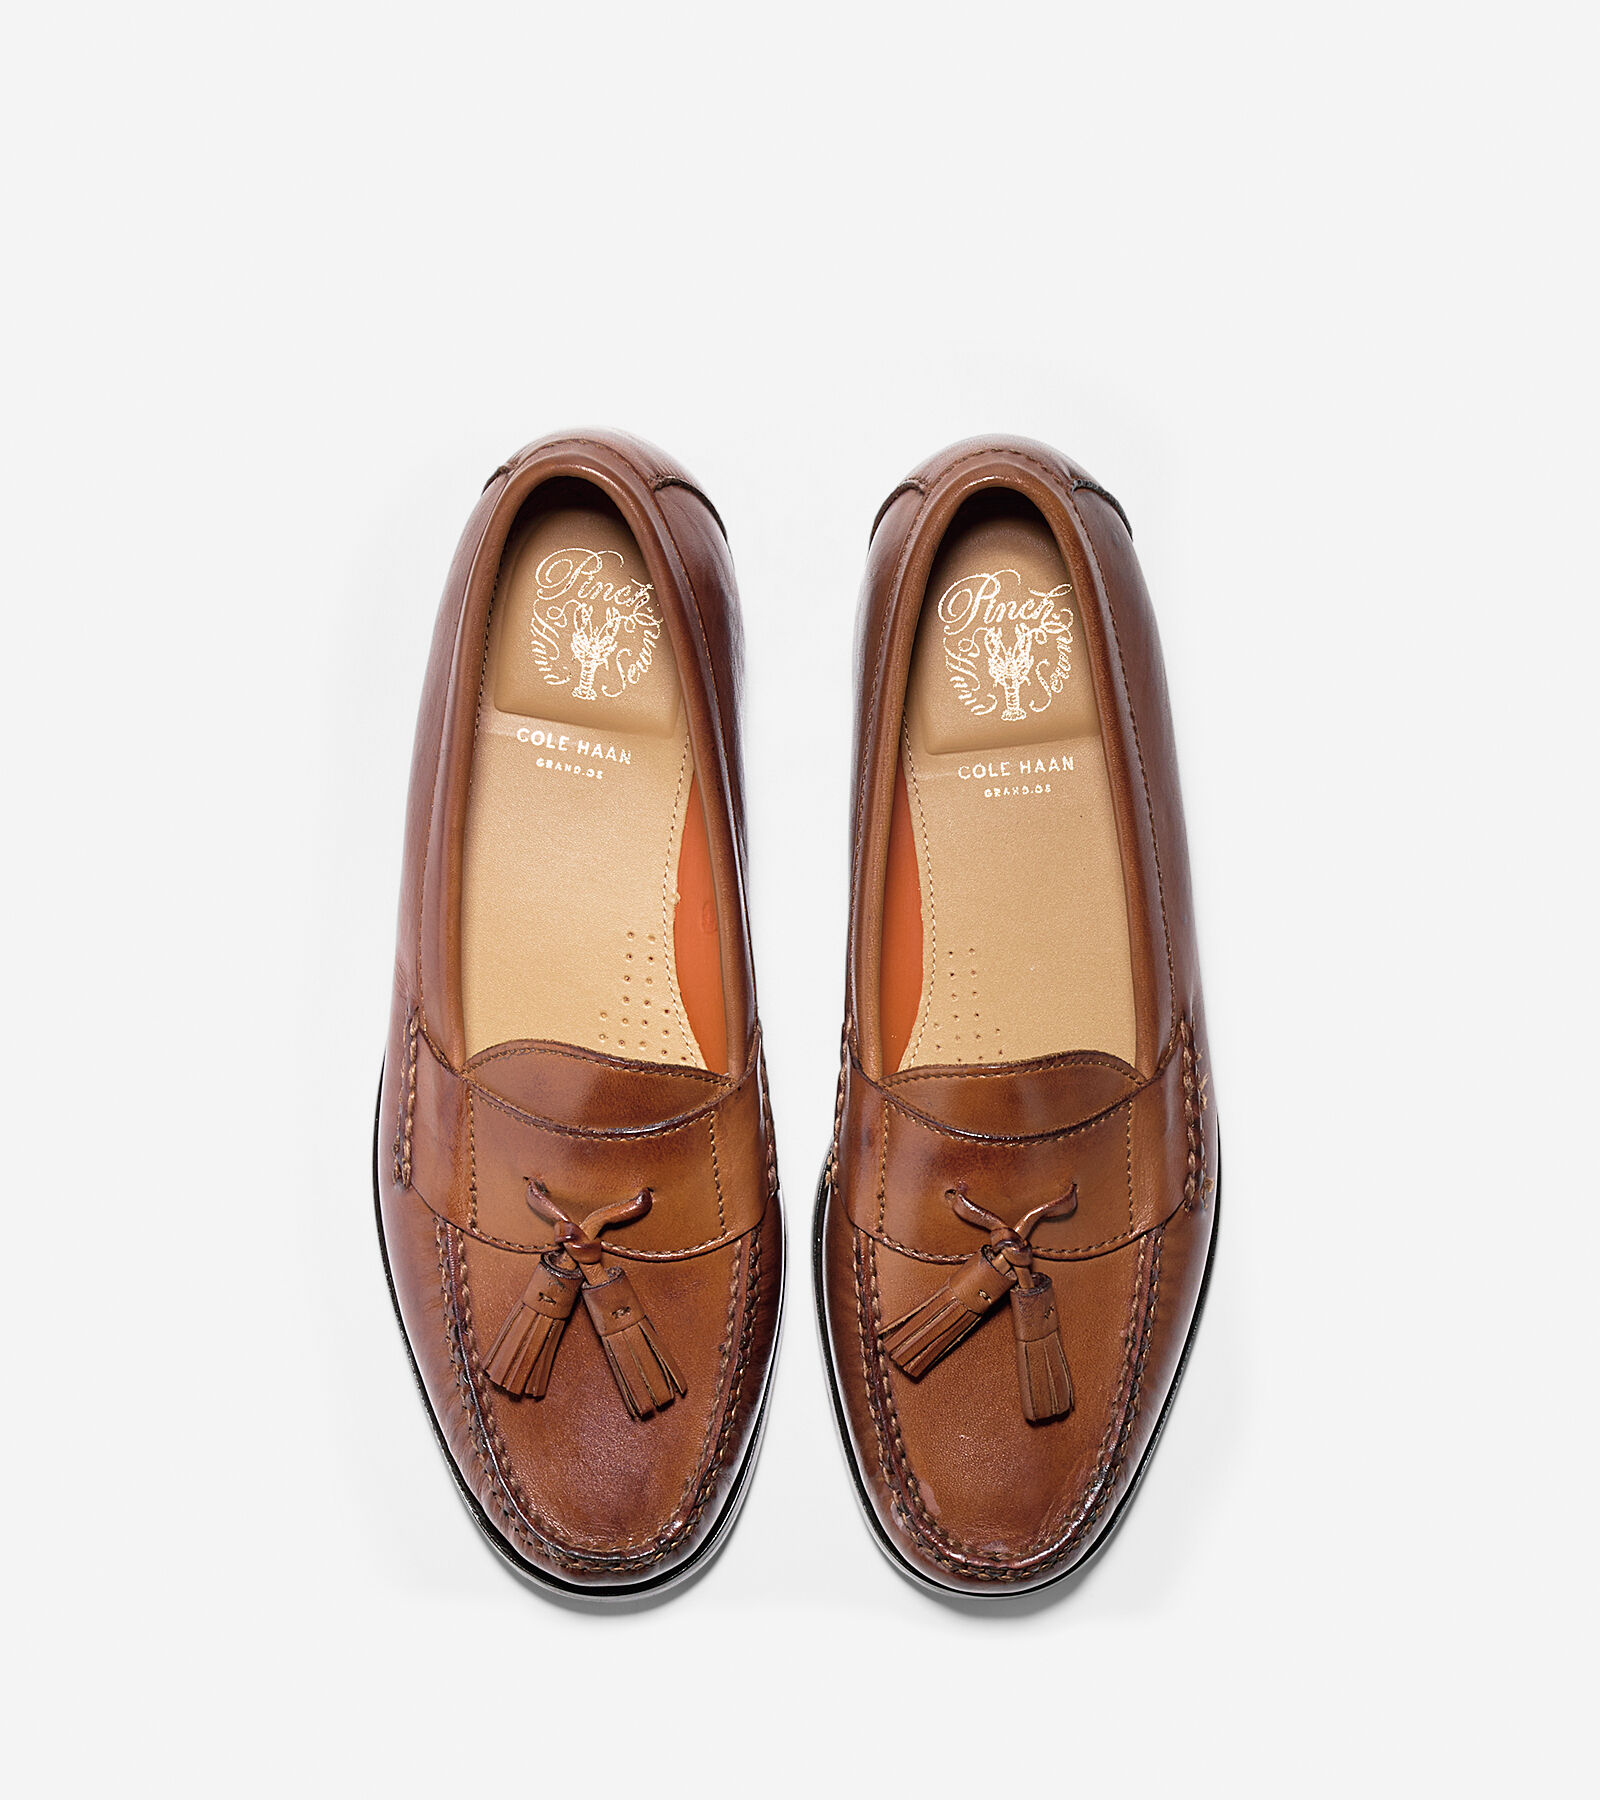 ... Men's Pinch Grand Tassel Loafer; Men's Pinch Grand Tassel Loafer. # colehaan